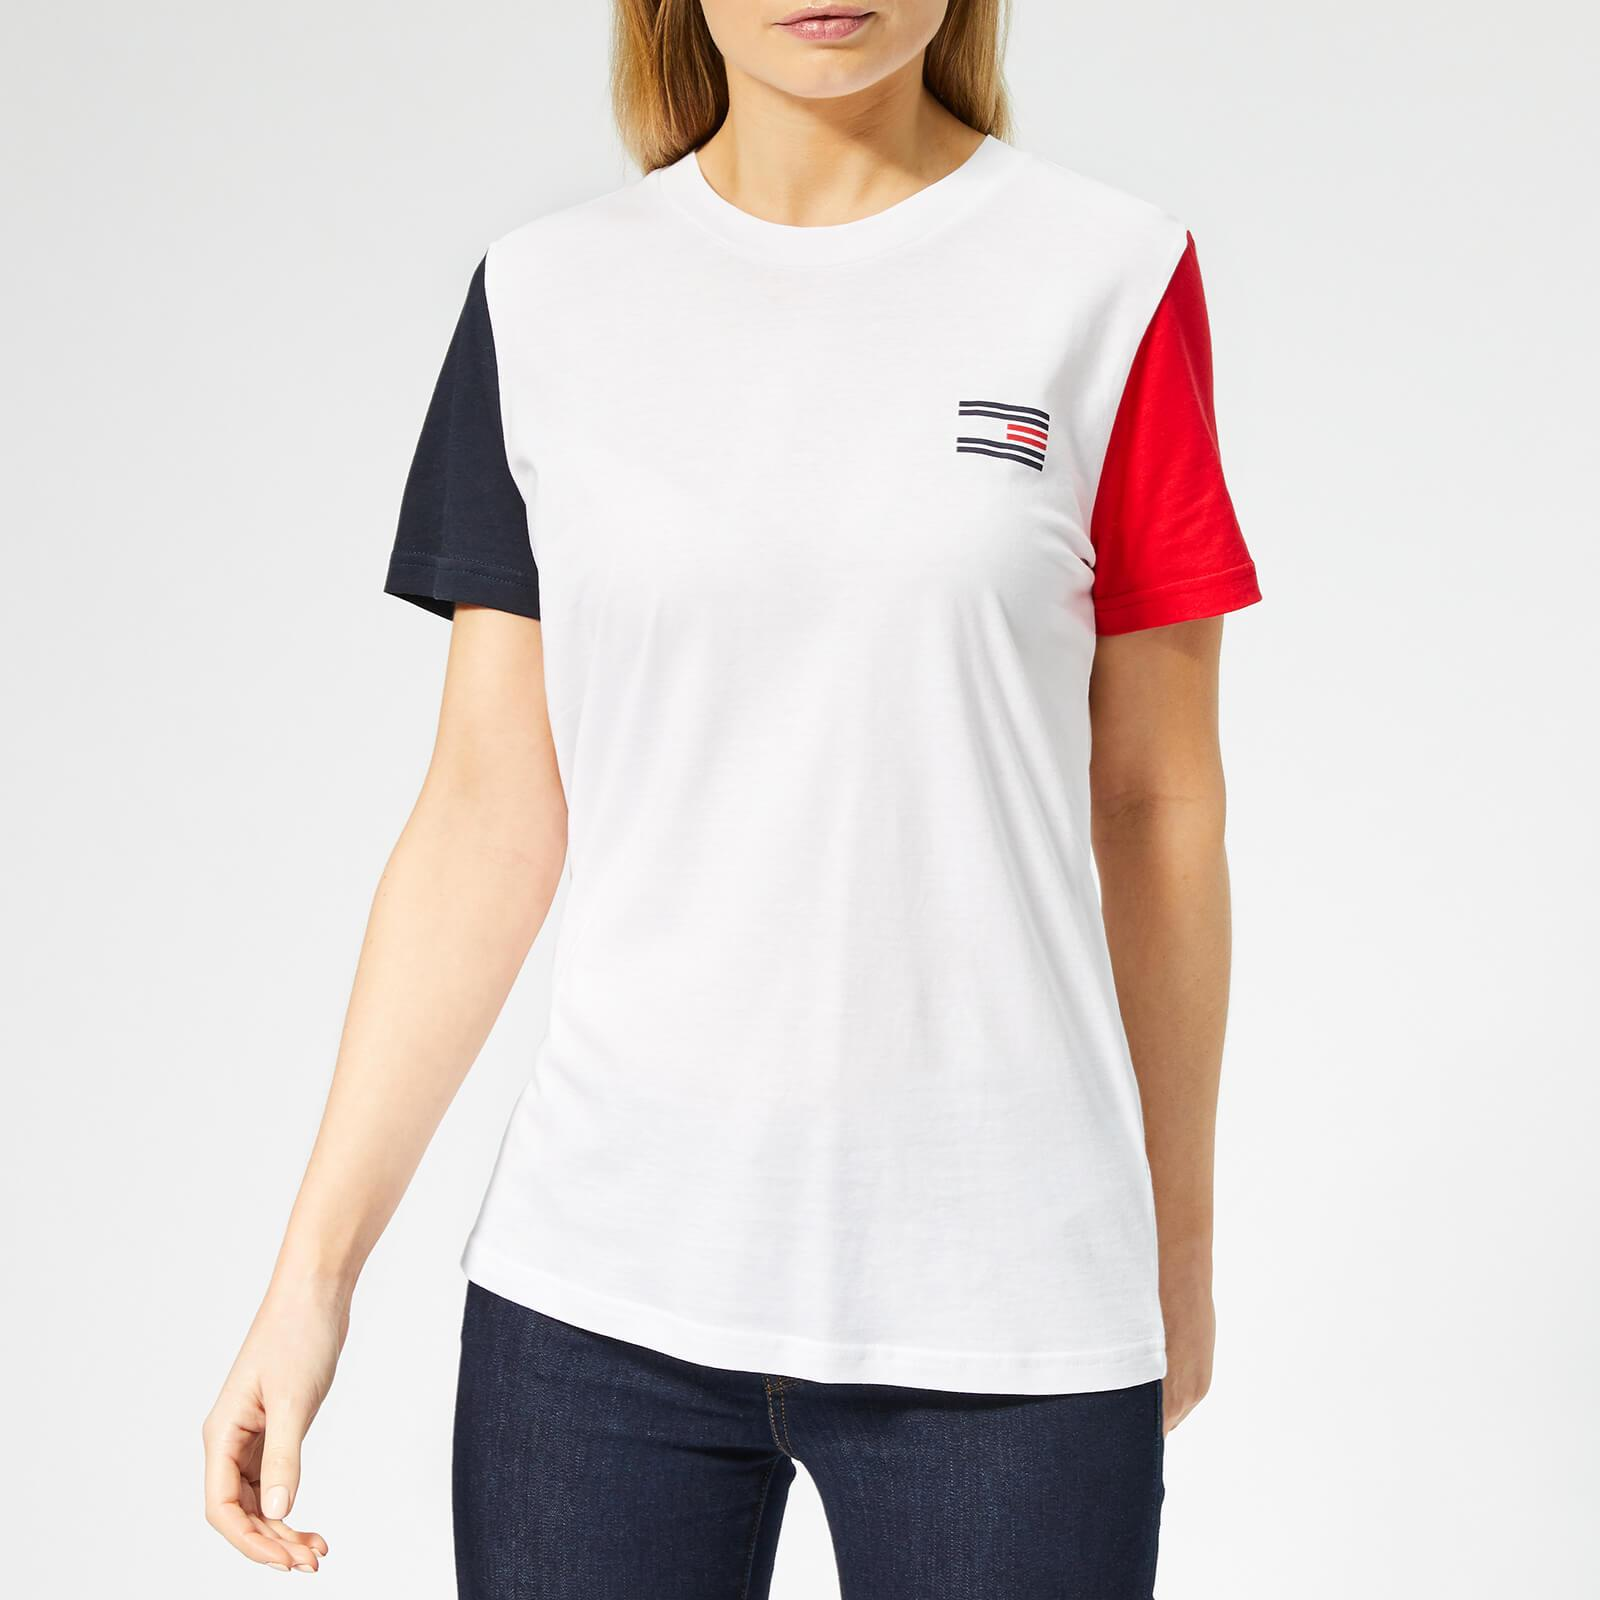 c5c83e05 Tommy Hilfiger Talita Oversized T-shirt in White - Lyst